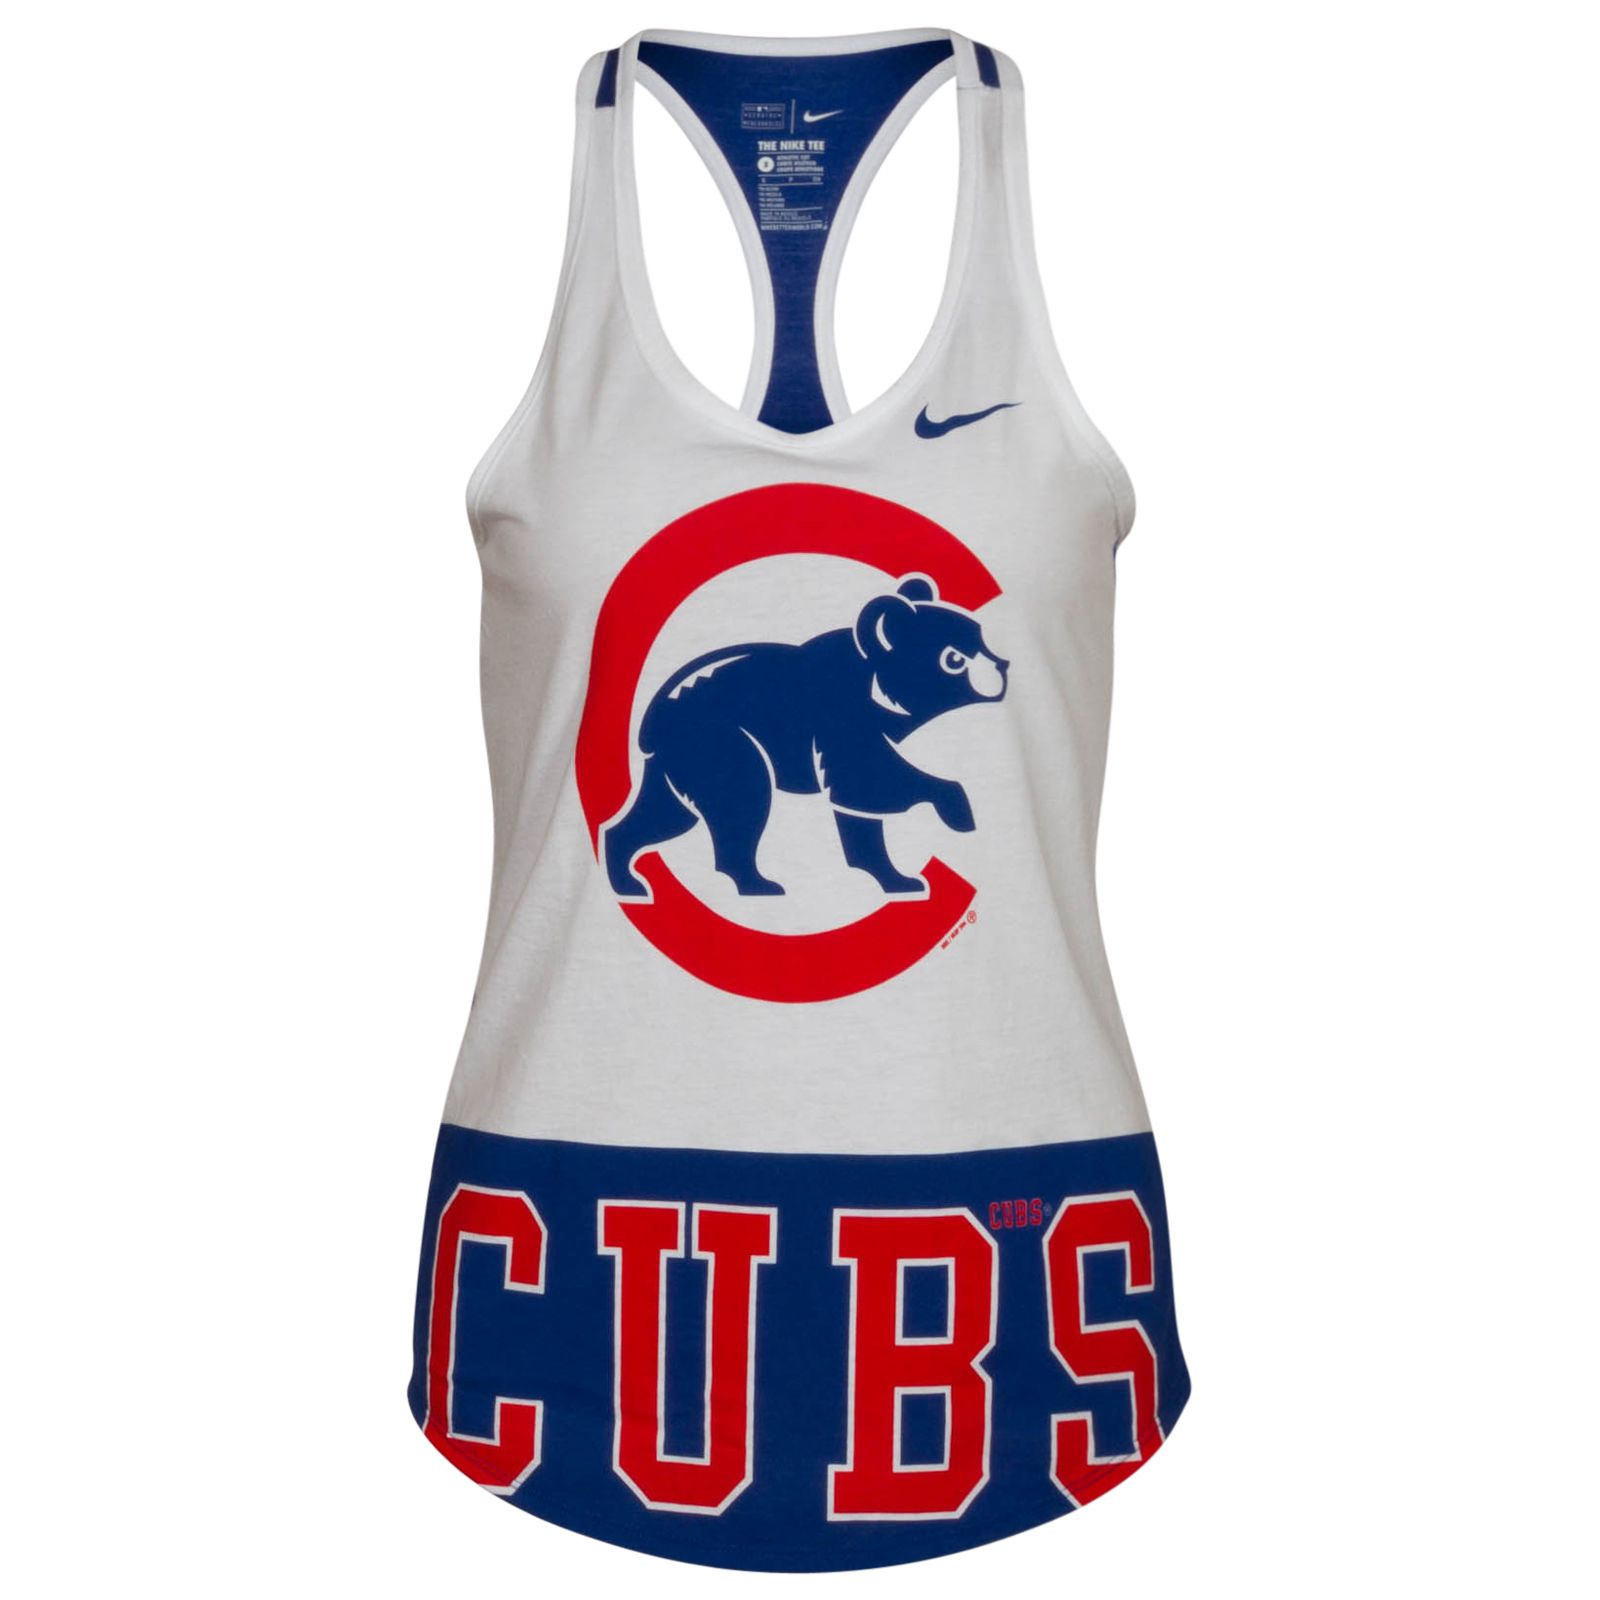 Chicago Cubs Women's White and Royal Crawl Bear Tri-Blend Racer Back Tank  Top by